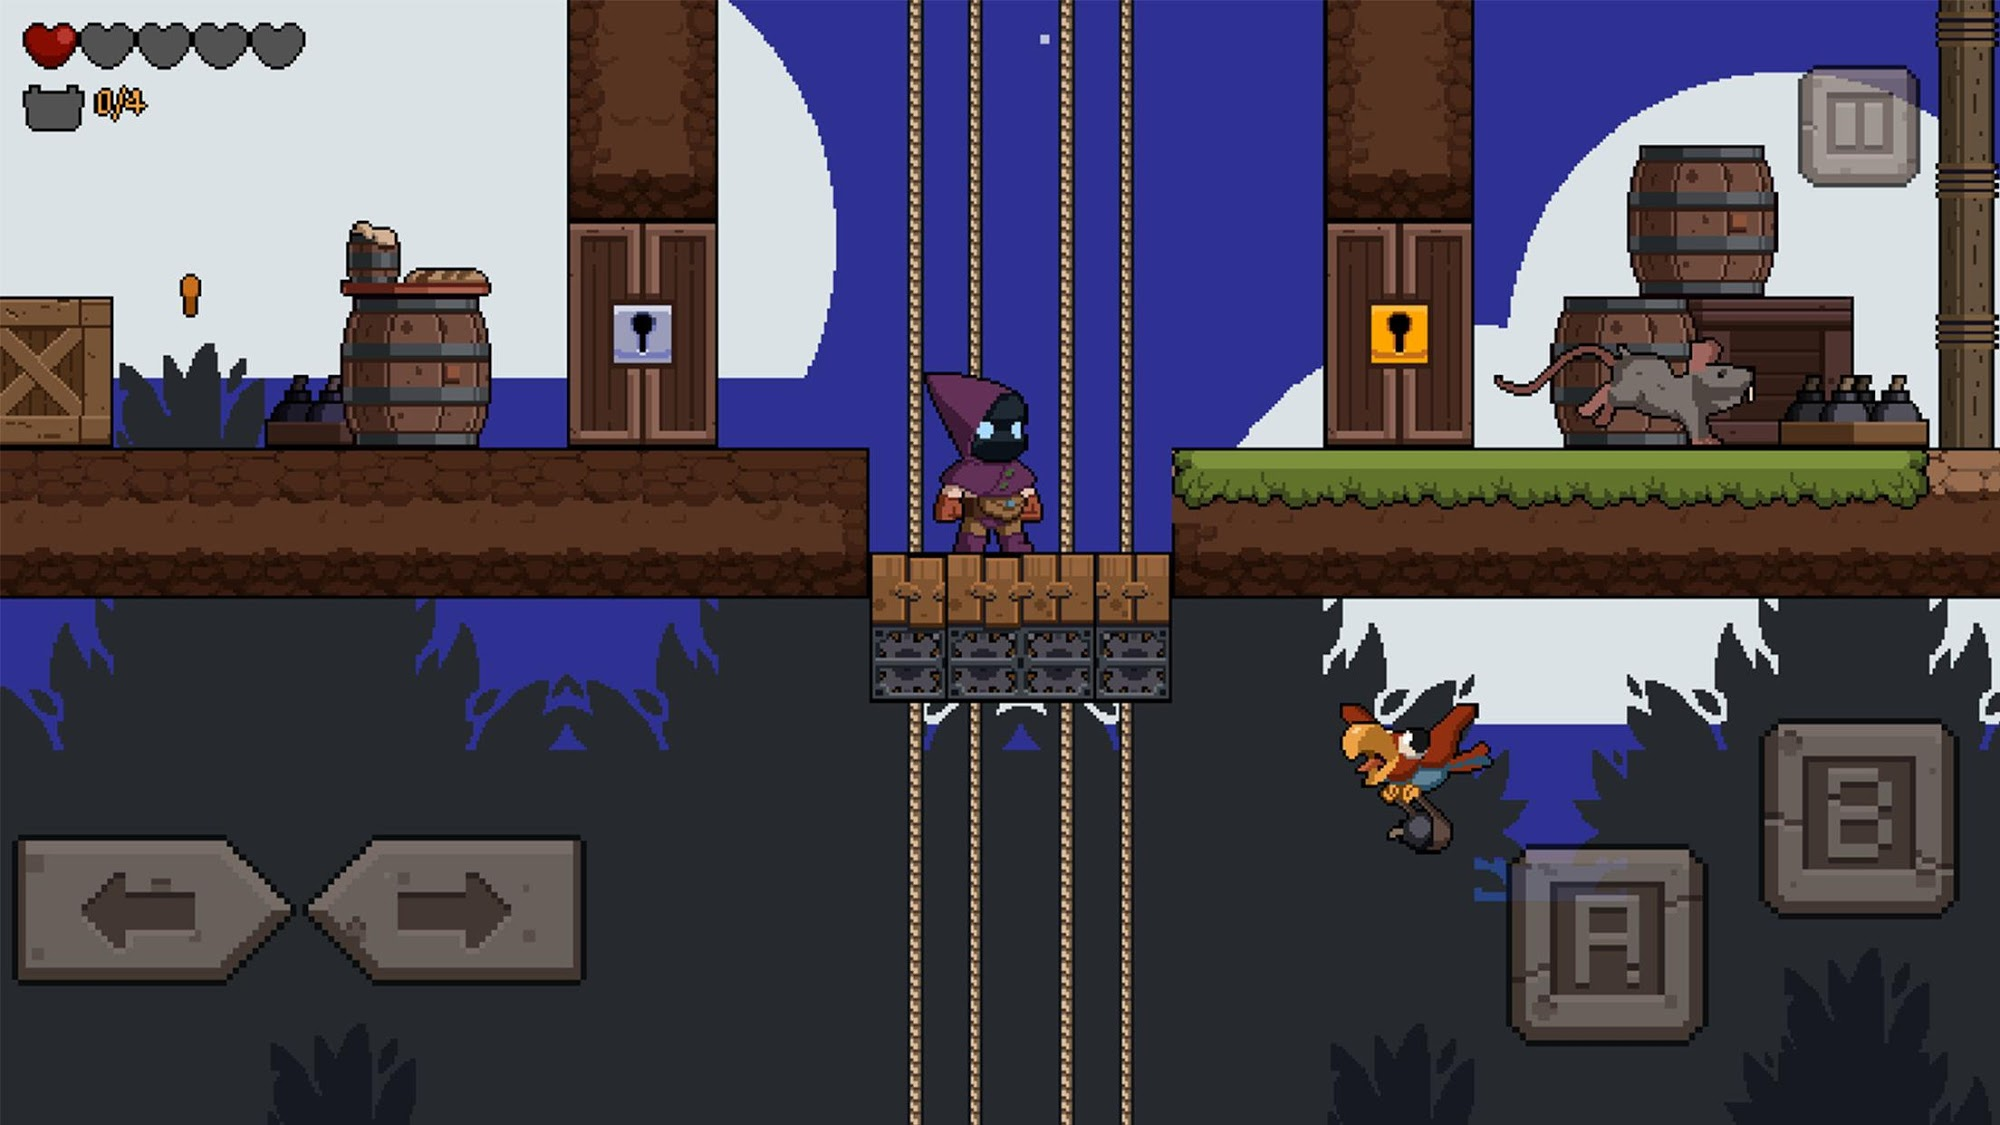 Portal Walk screenshot 1